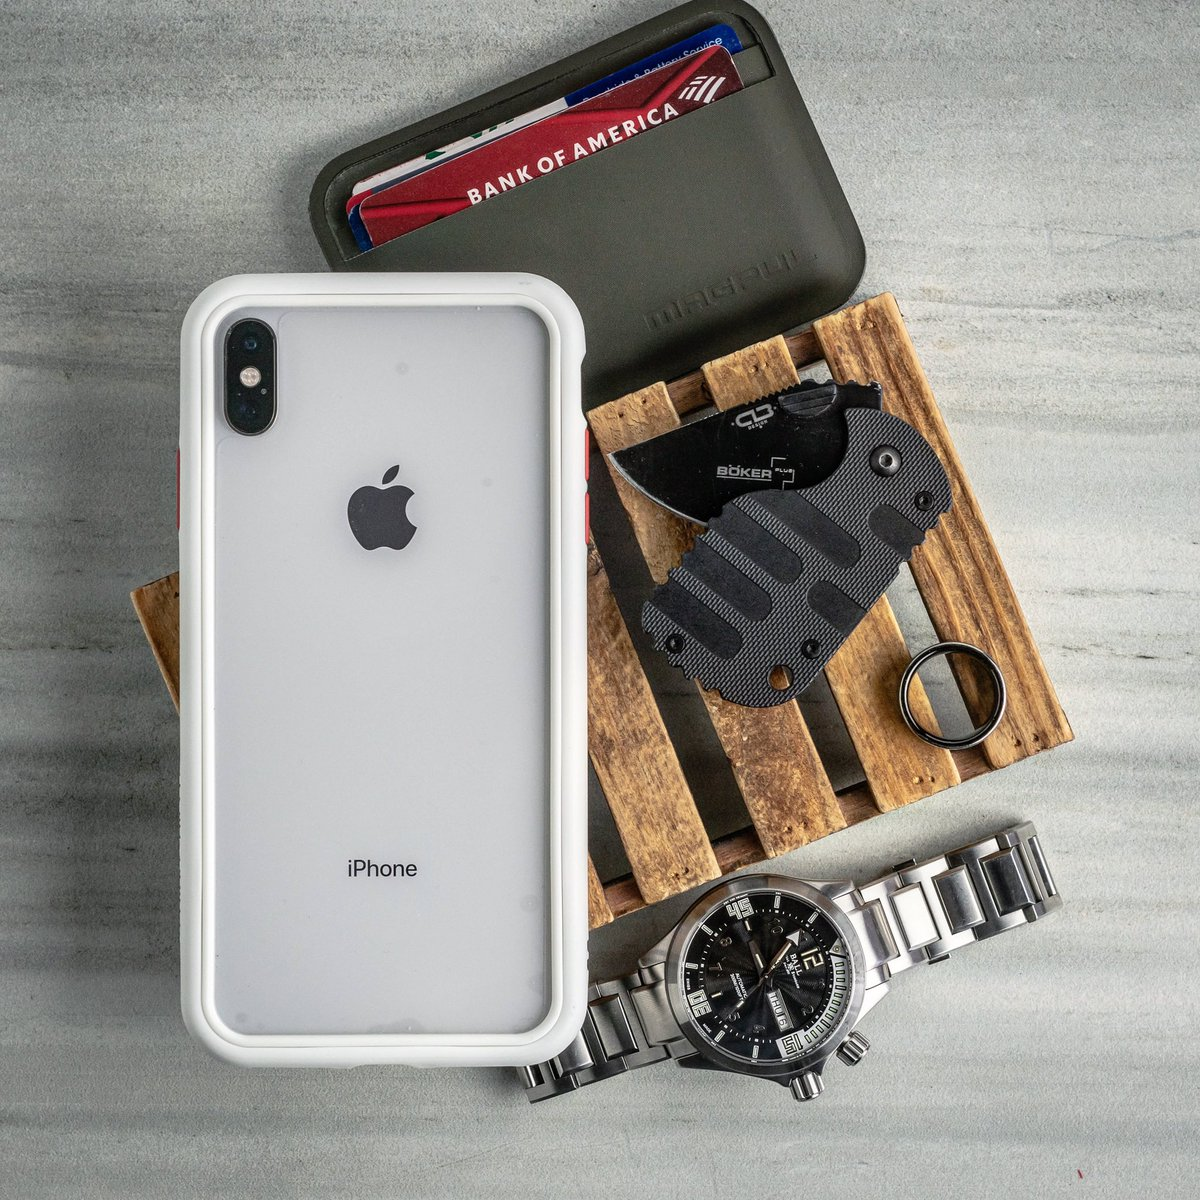 """"""" Weekend Goodies """"  Prep for the day... Looks like it's gonna be a good one! Cheers   - #RhinoShield #PhoneCase #iPhoneXSMax #BallWatch #SwissWatch #AutomaticWatches #Boker #EverydayCarry #EDCpic.twitter.com/R4gq7ow9qn"""